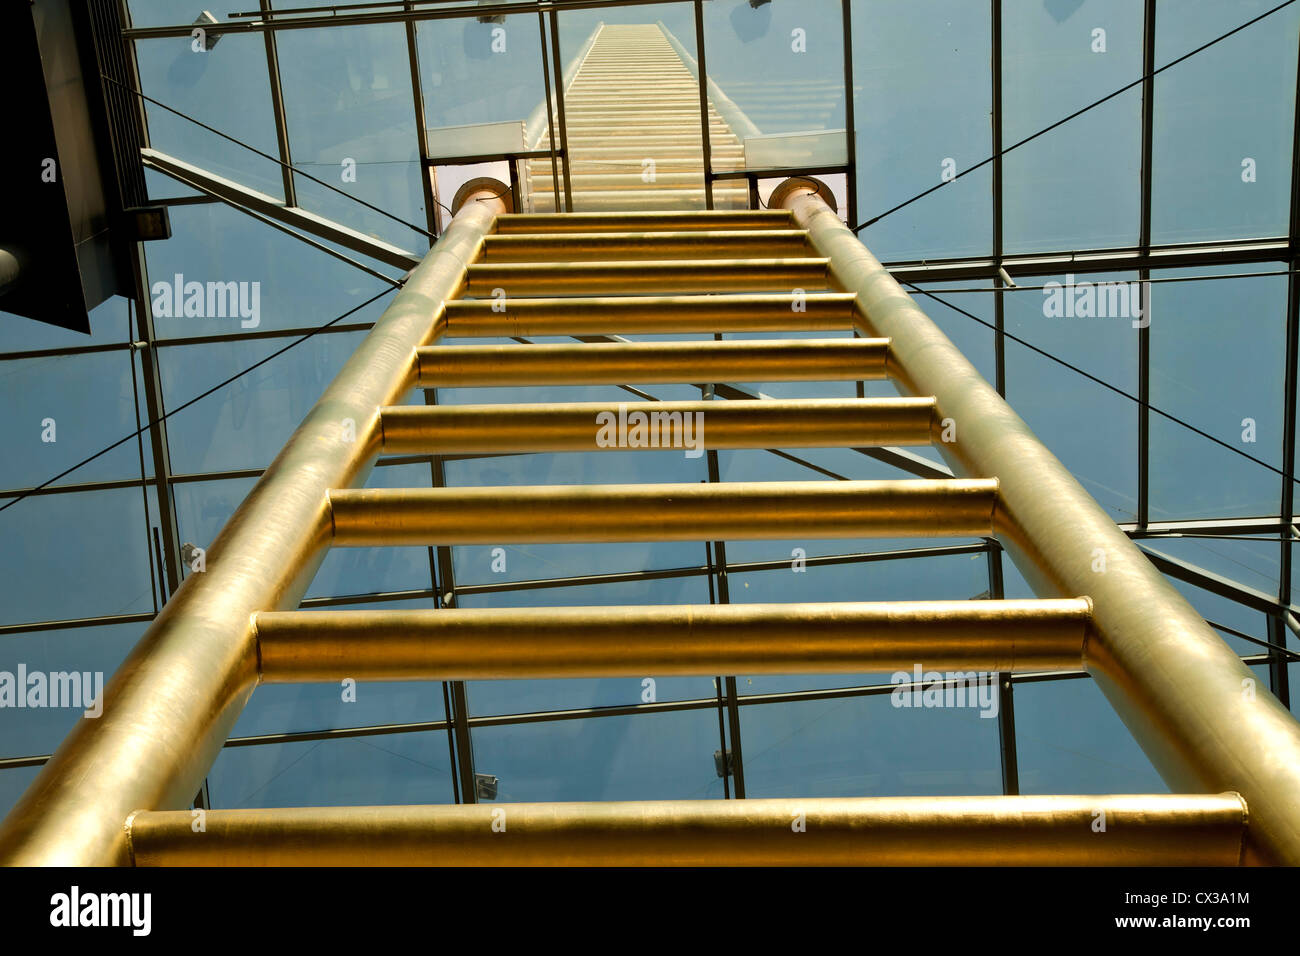 golden ladder of the Forum shopping complex in Duisburg, North Rhine-Westphalia, Germany, Europe - Stock Image